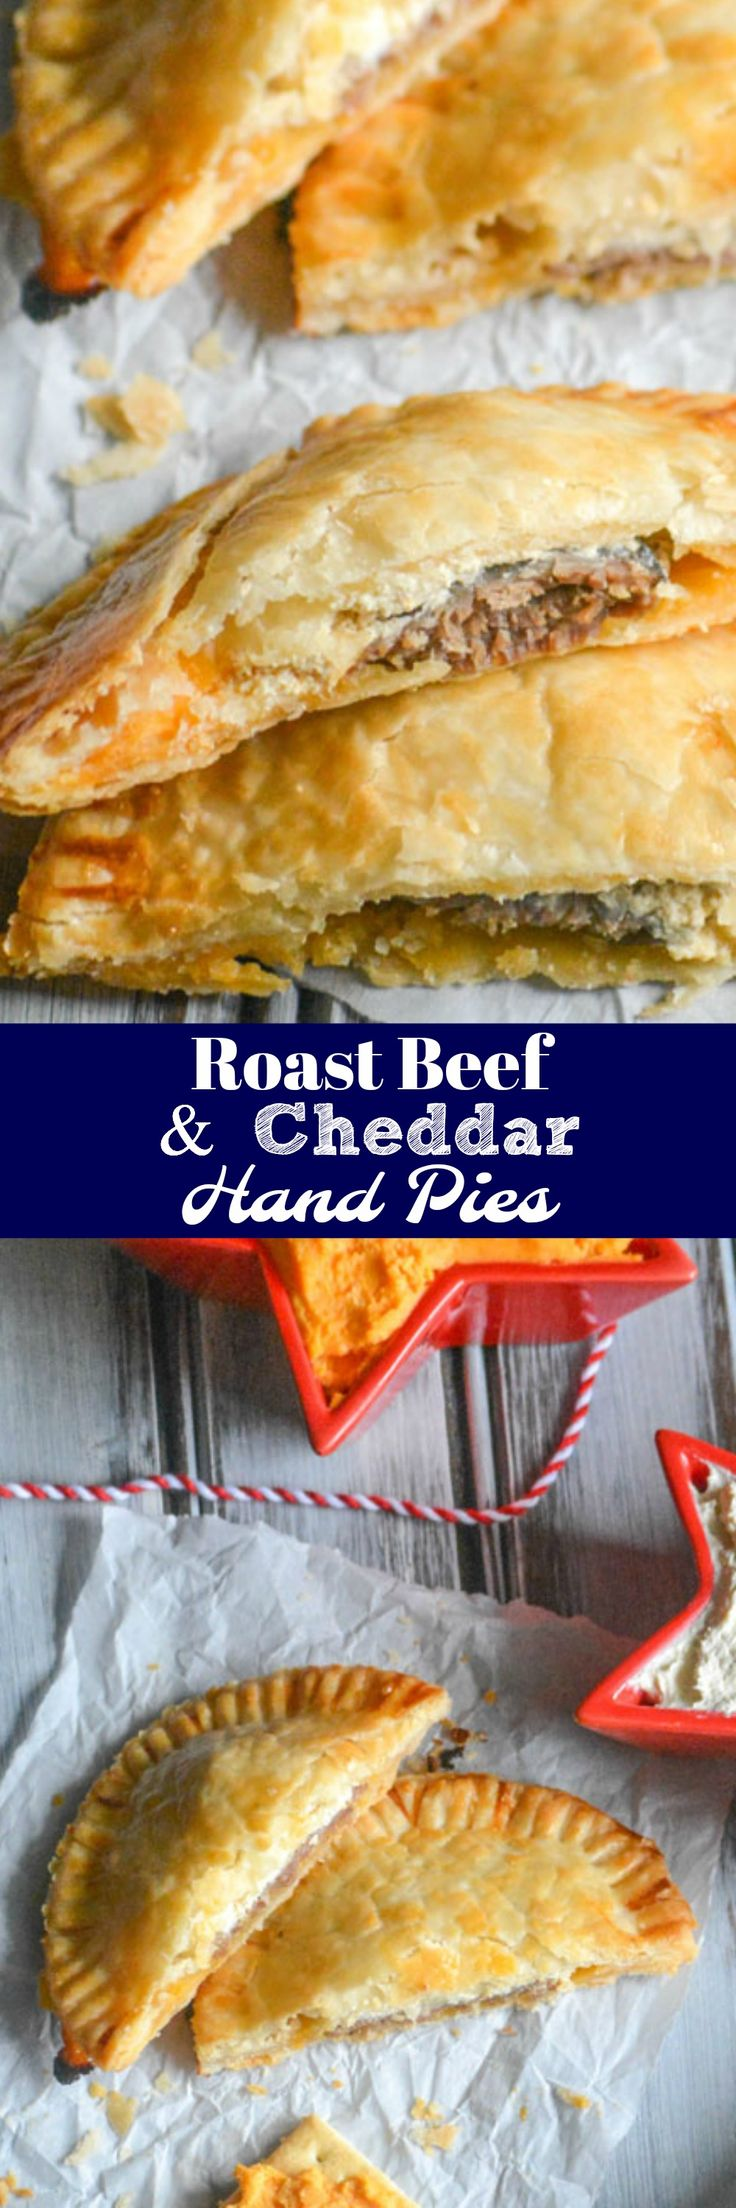 Buttery flaky hand pies are stuffed with savory roast beef, cheddar cheese, & a horseradish Dijon cream cheese spread for a convenient, handheld appetizer. These Stuffed Roast Beef & Cheddar Hand Pies are the perfect finger food for this year's Holiday season. #InspireWithCheese #ad